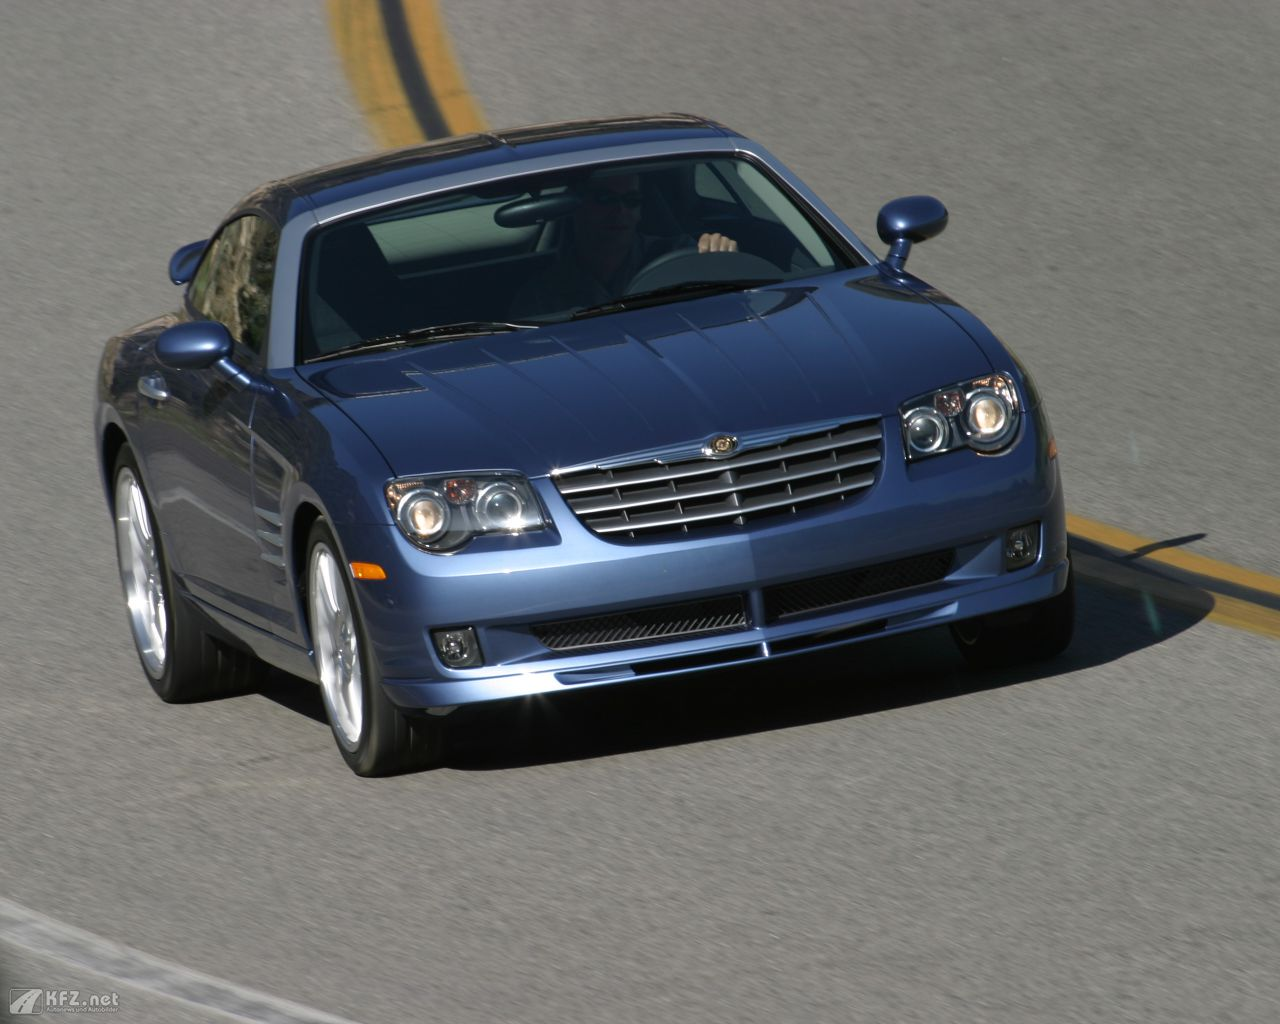 chrysler-crossfire-1280x1024-14